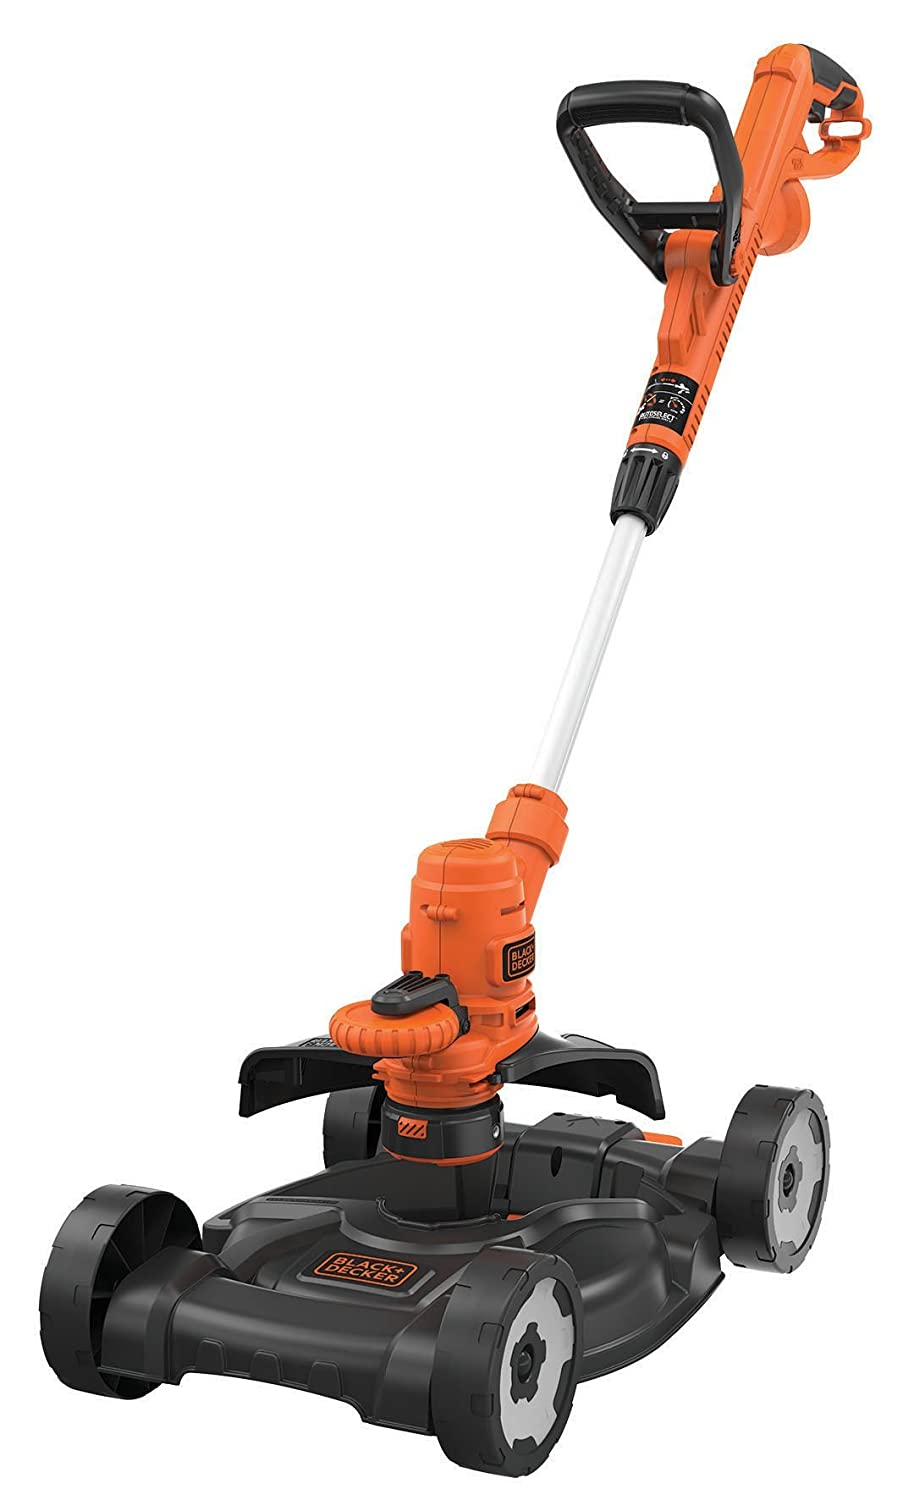 Black & Decker 3 In 1 Multi Trimmer, lawn trimmer, edge trimmer, edge cutter, lawn mower (E drive, 30 cm cutting width, automatic thread resetting, single thread, 9 m ᴓ 1.6 mm) – Black, Orange, ST5530 CM ST5530 CM Black+Decker ST5530CM-QS